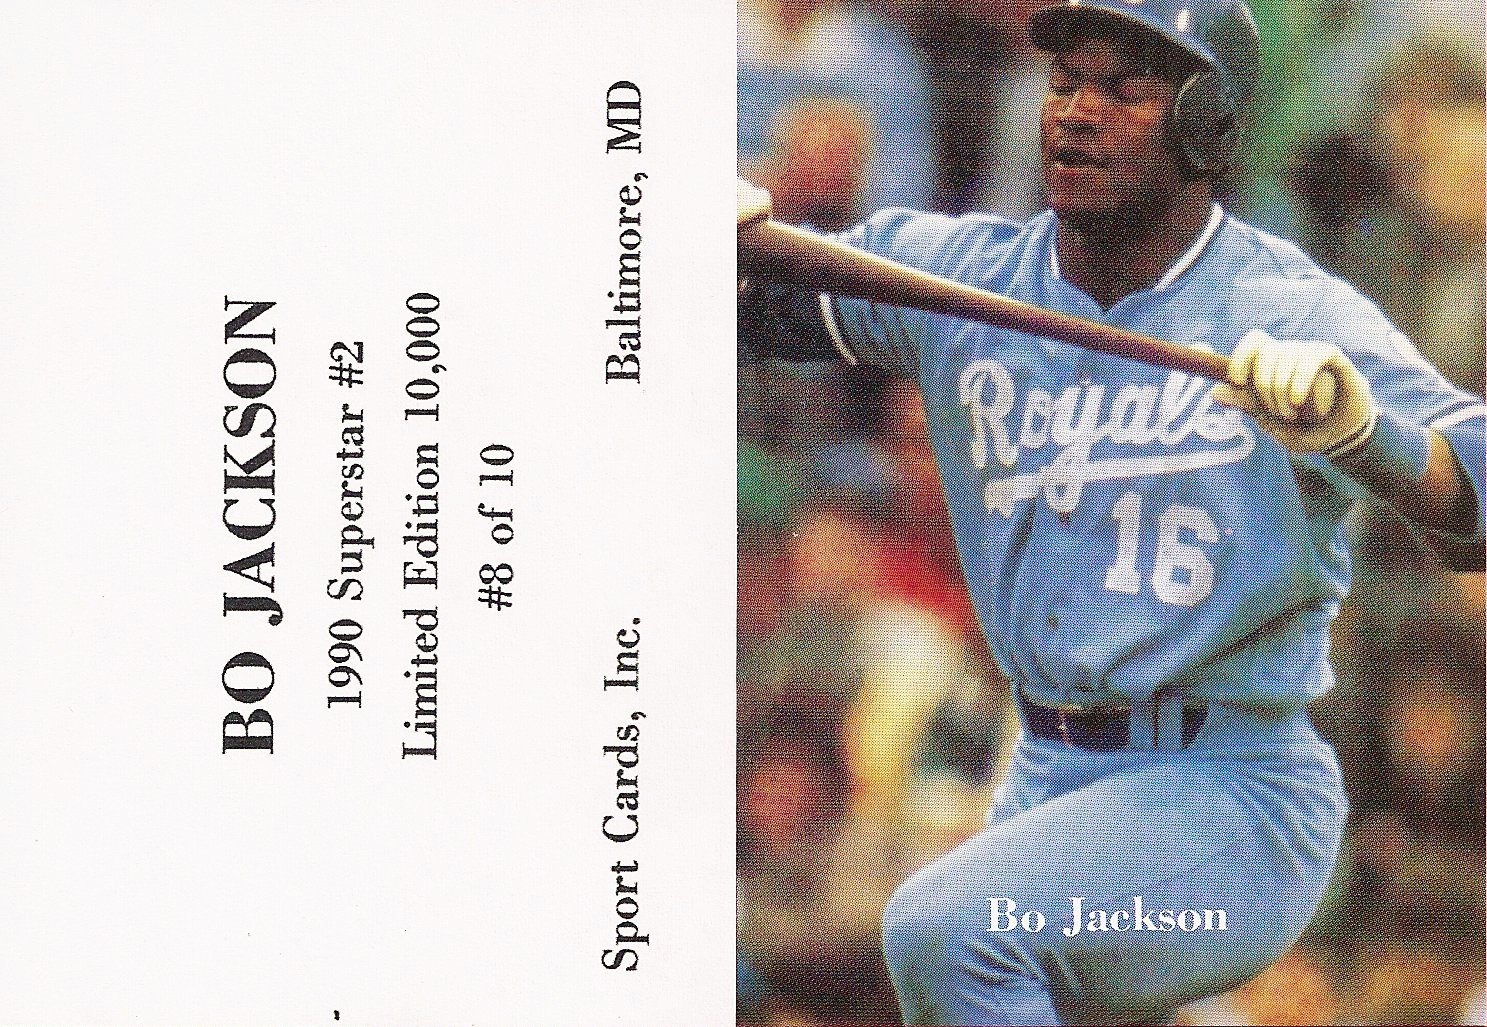 1990 Sports Card Inc. Superstar #2 (1 of 10,000)